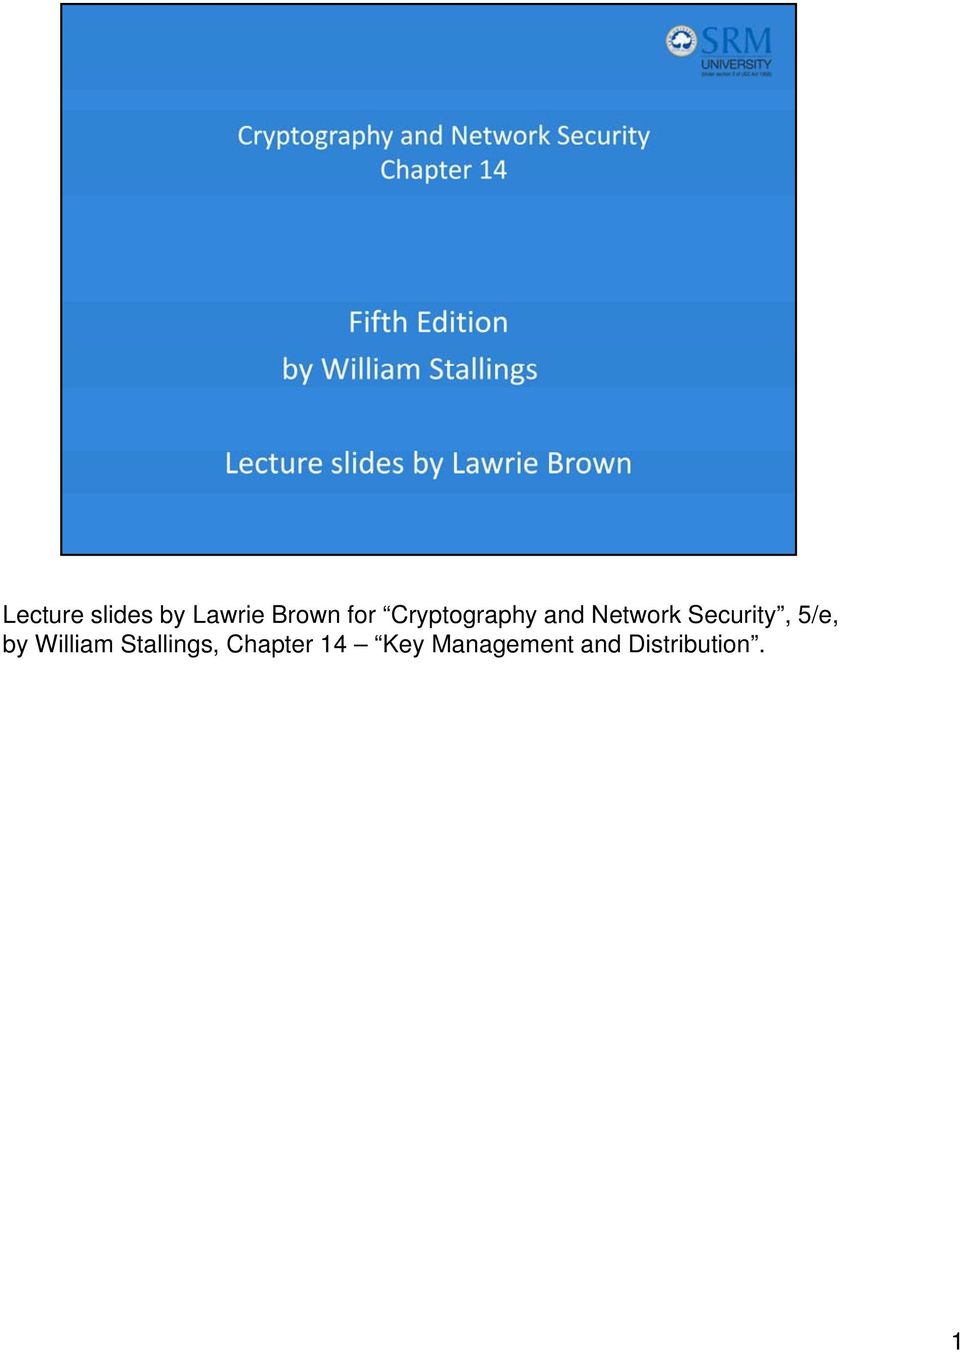 5/e, by William Stallings, Chapter